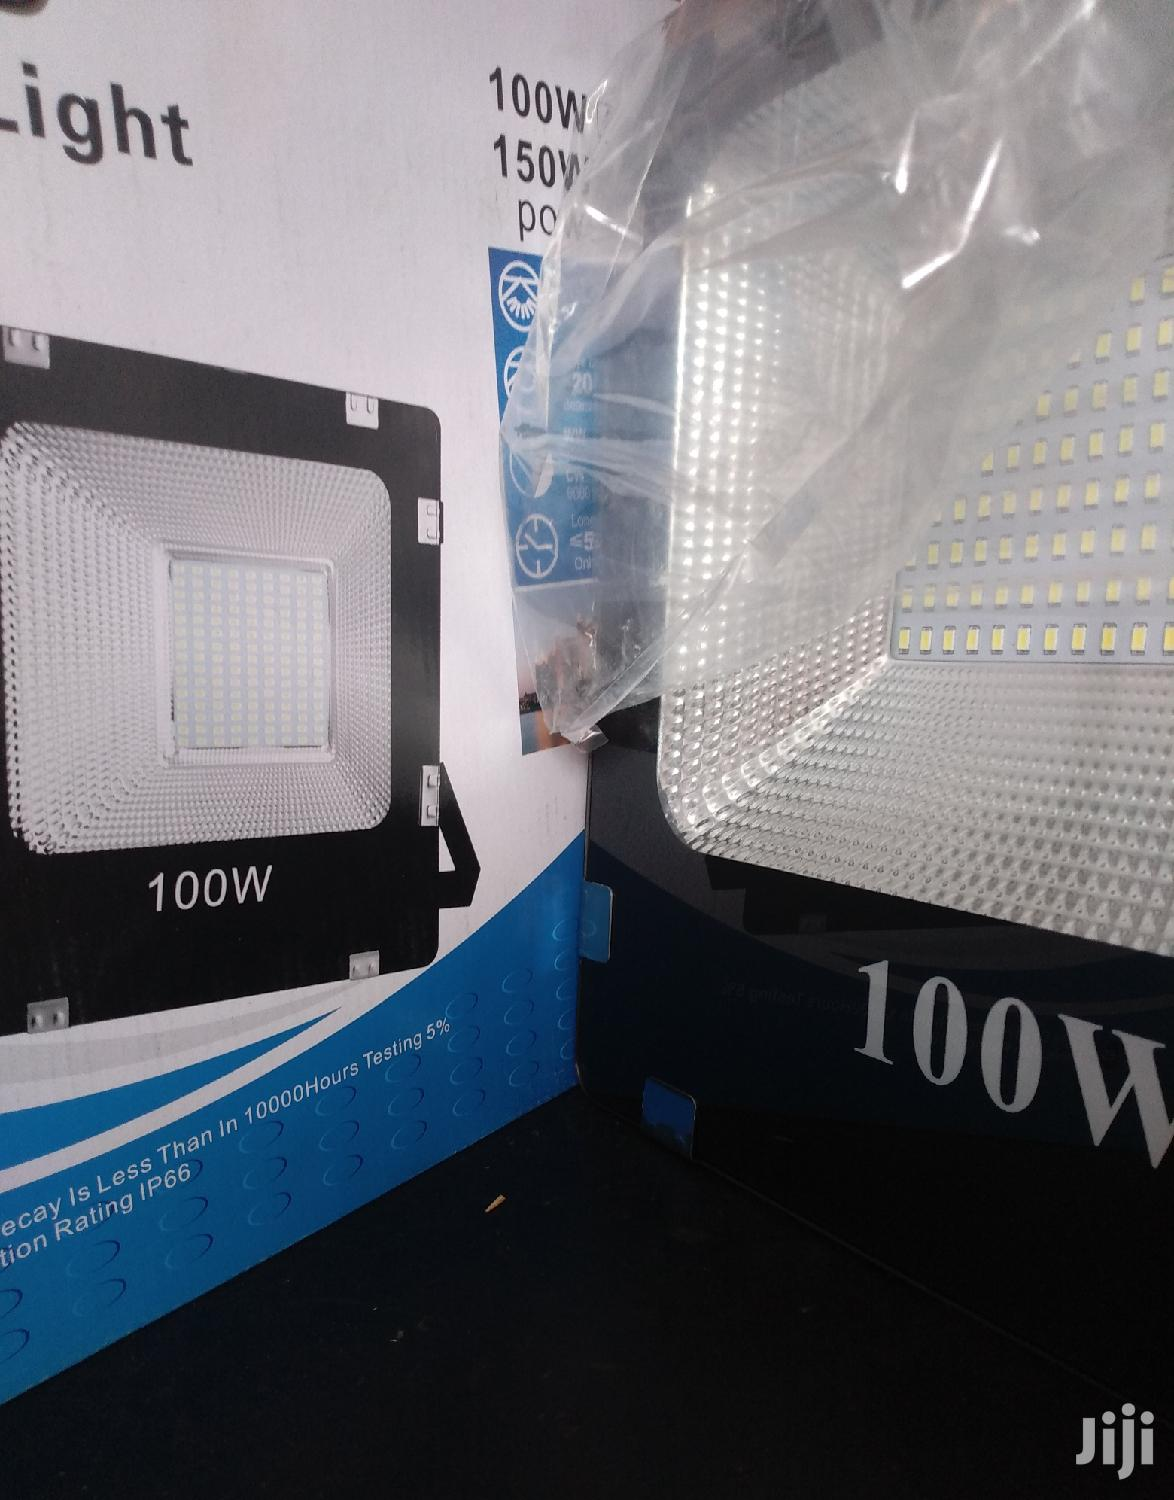 100W LED Flood Light | Home Accessories for sale in East Legon, Greater Accra, Ghana